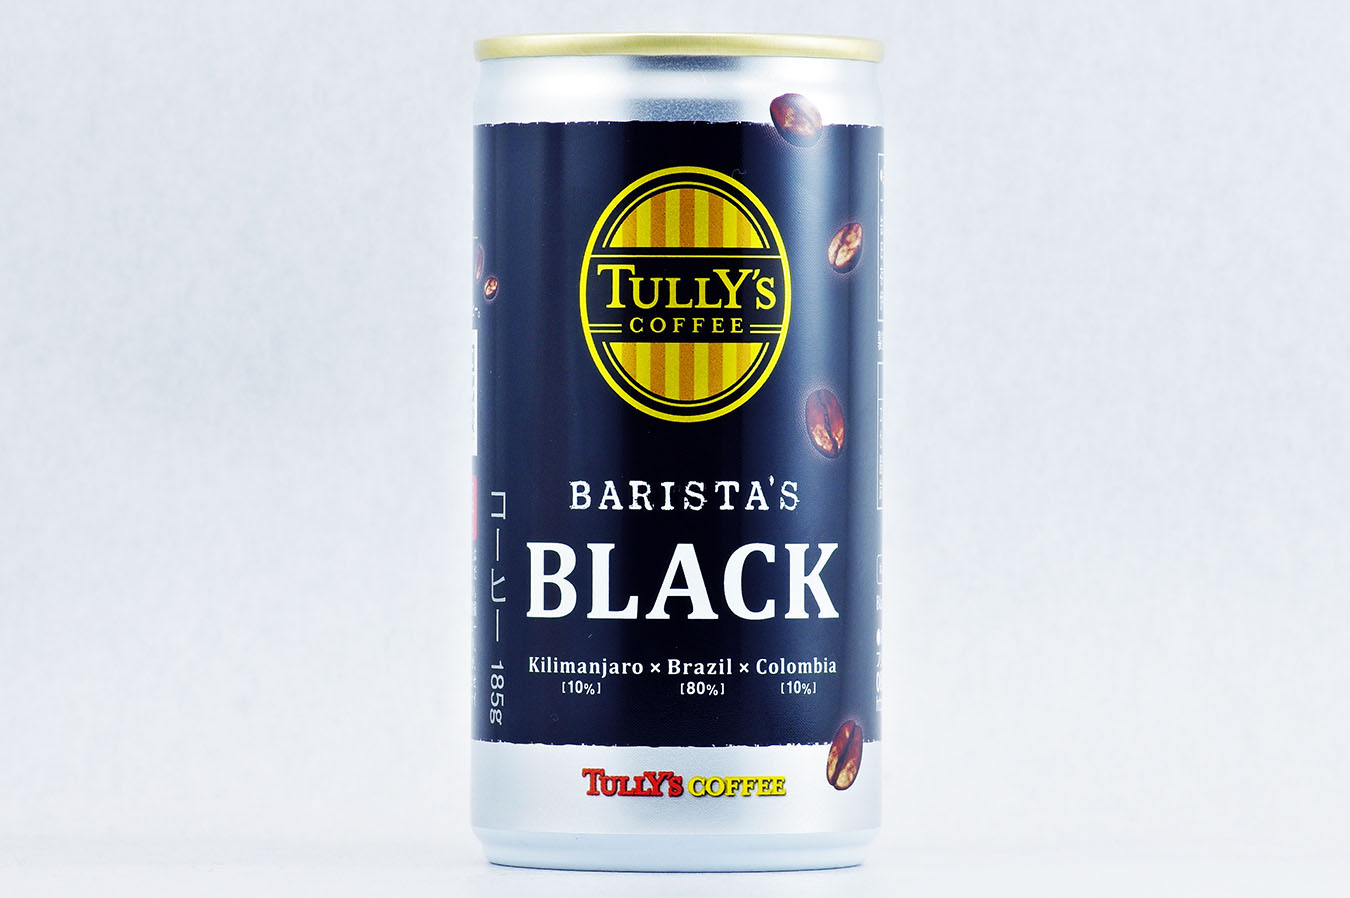 TULLY'S COFFEE BARISTA'S BLACK 185g缶 2015年11月